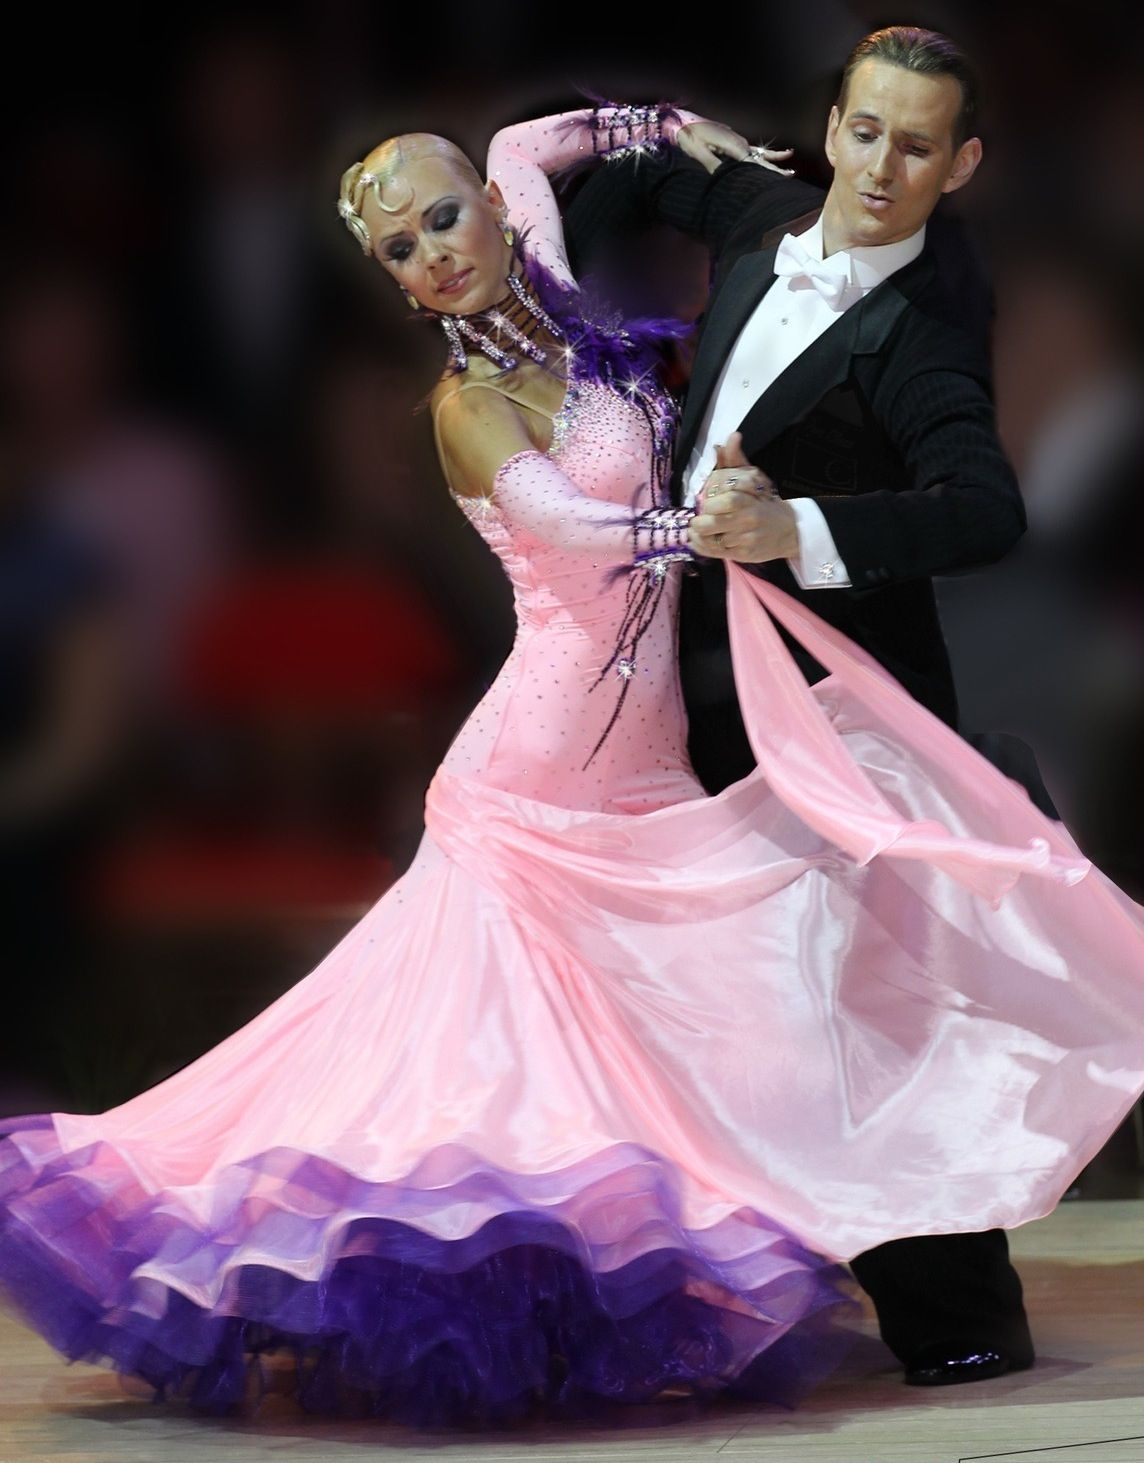 Vestidos Baile Salon Mark Elsbury And Olga Elsbury Blackpool Dance Festival